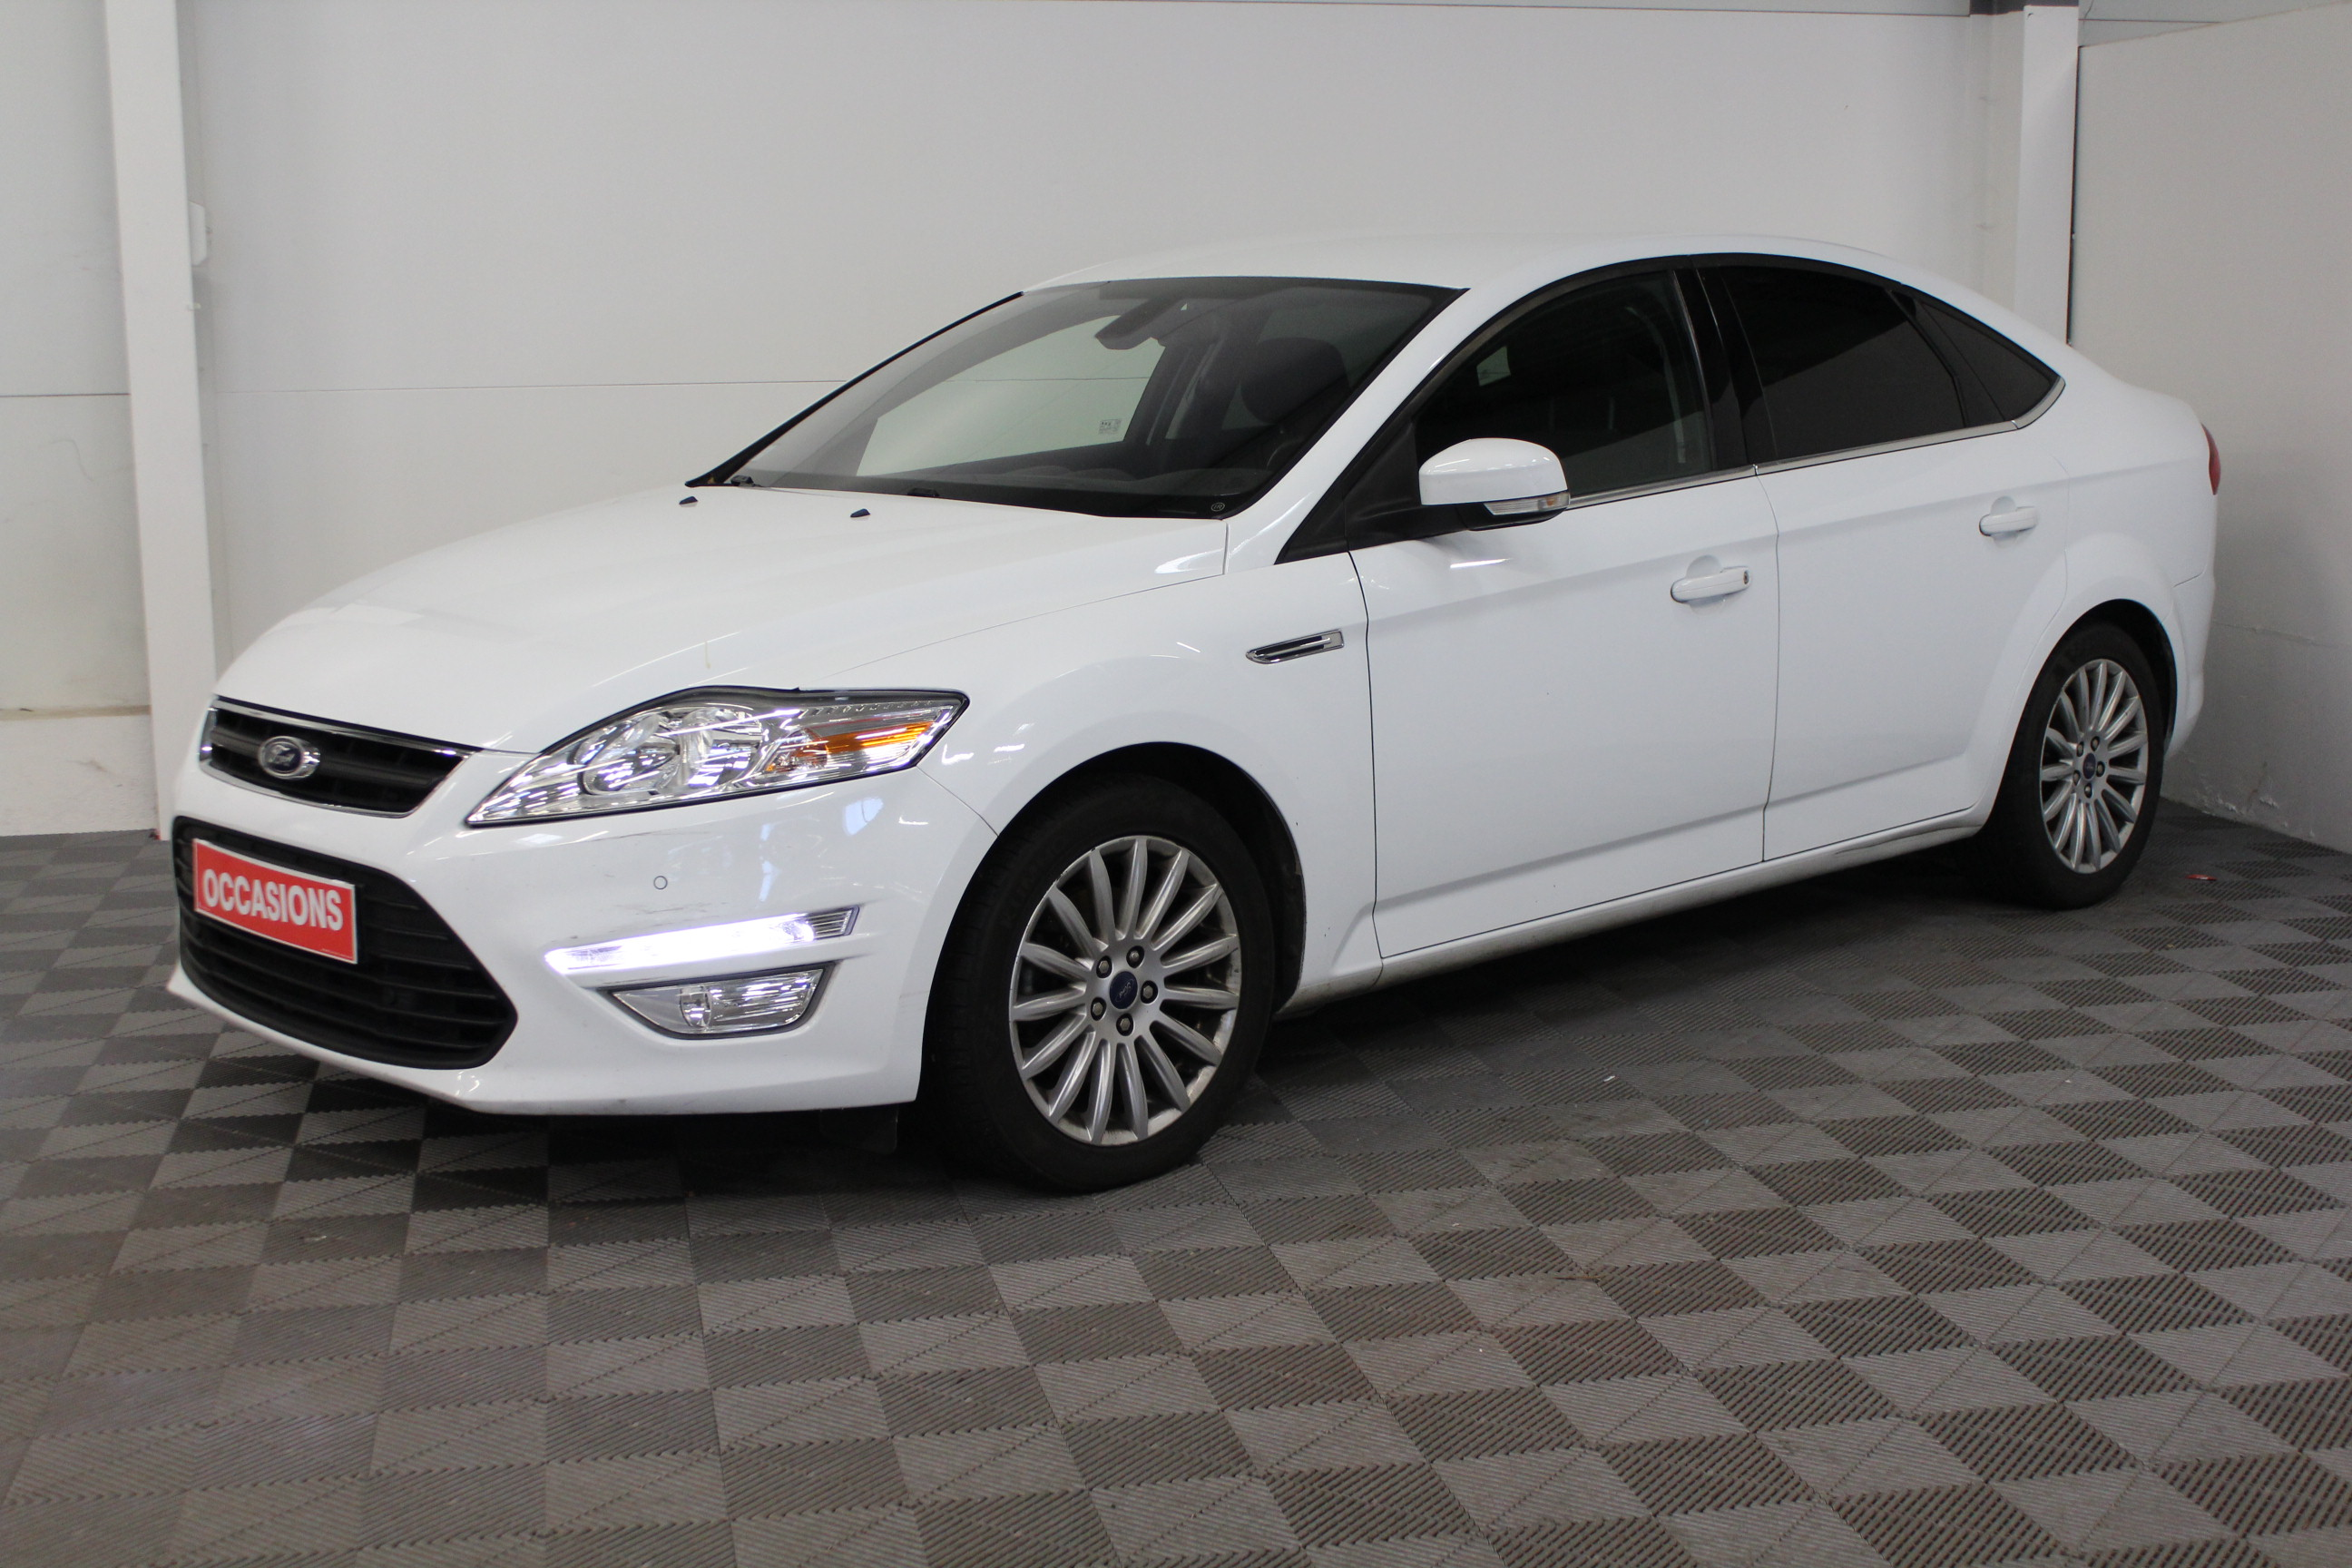 FORD MONDEO 2.0 TDCi 140 ECO FAP Business Nav d'occasion